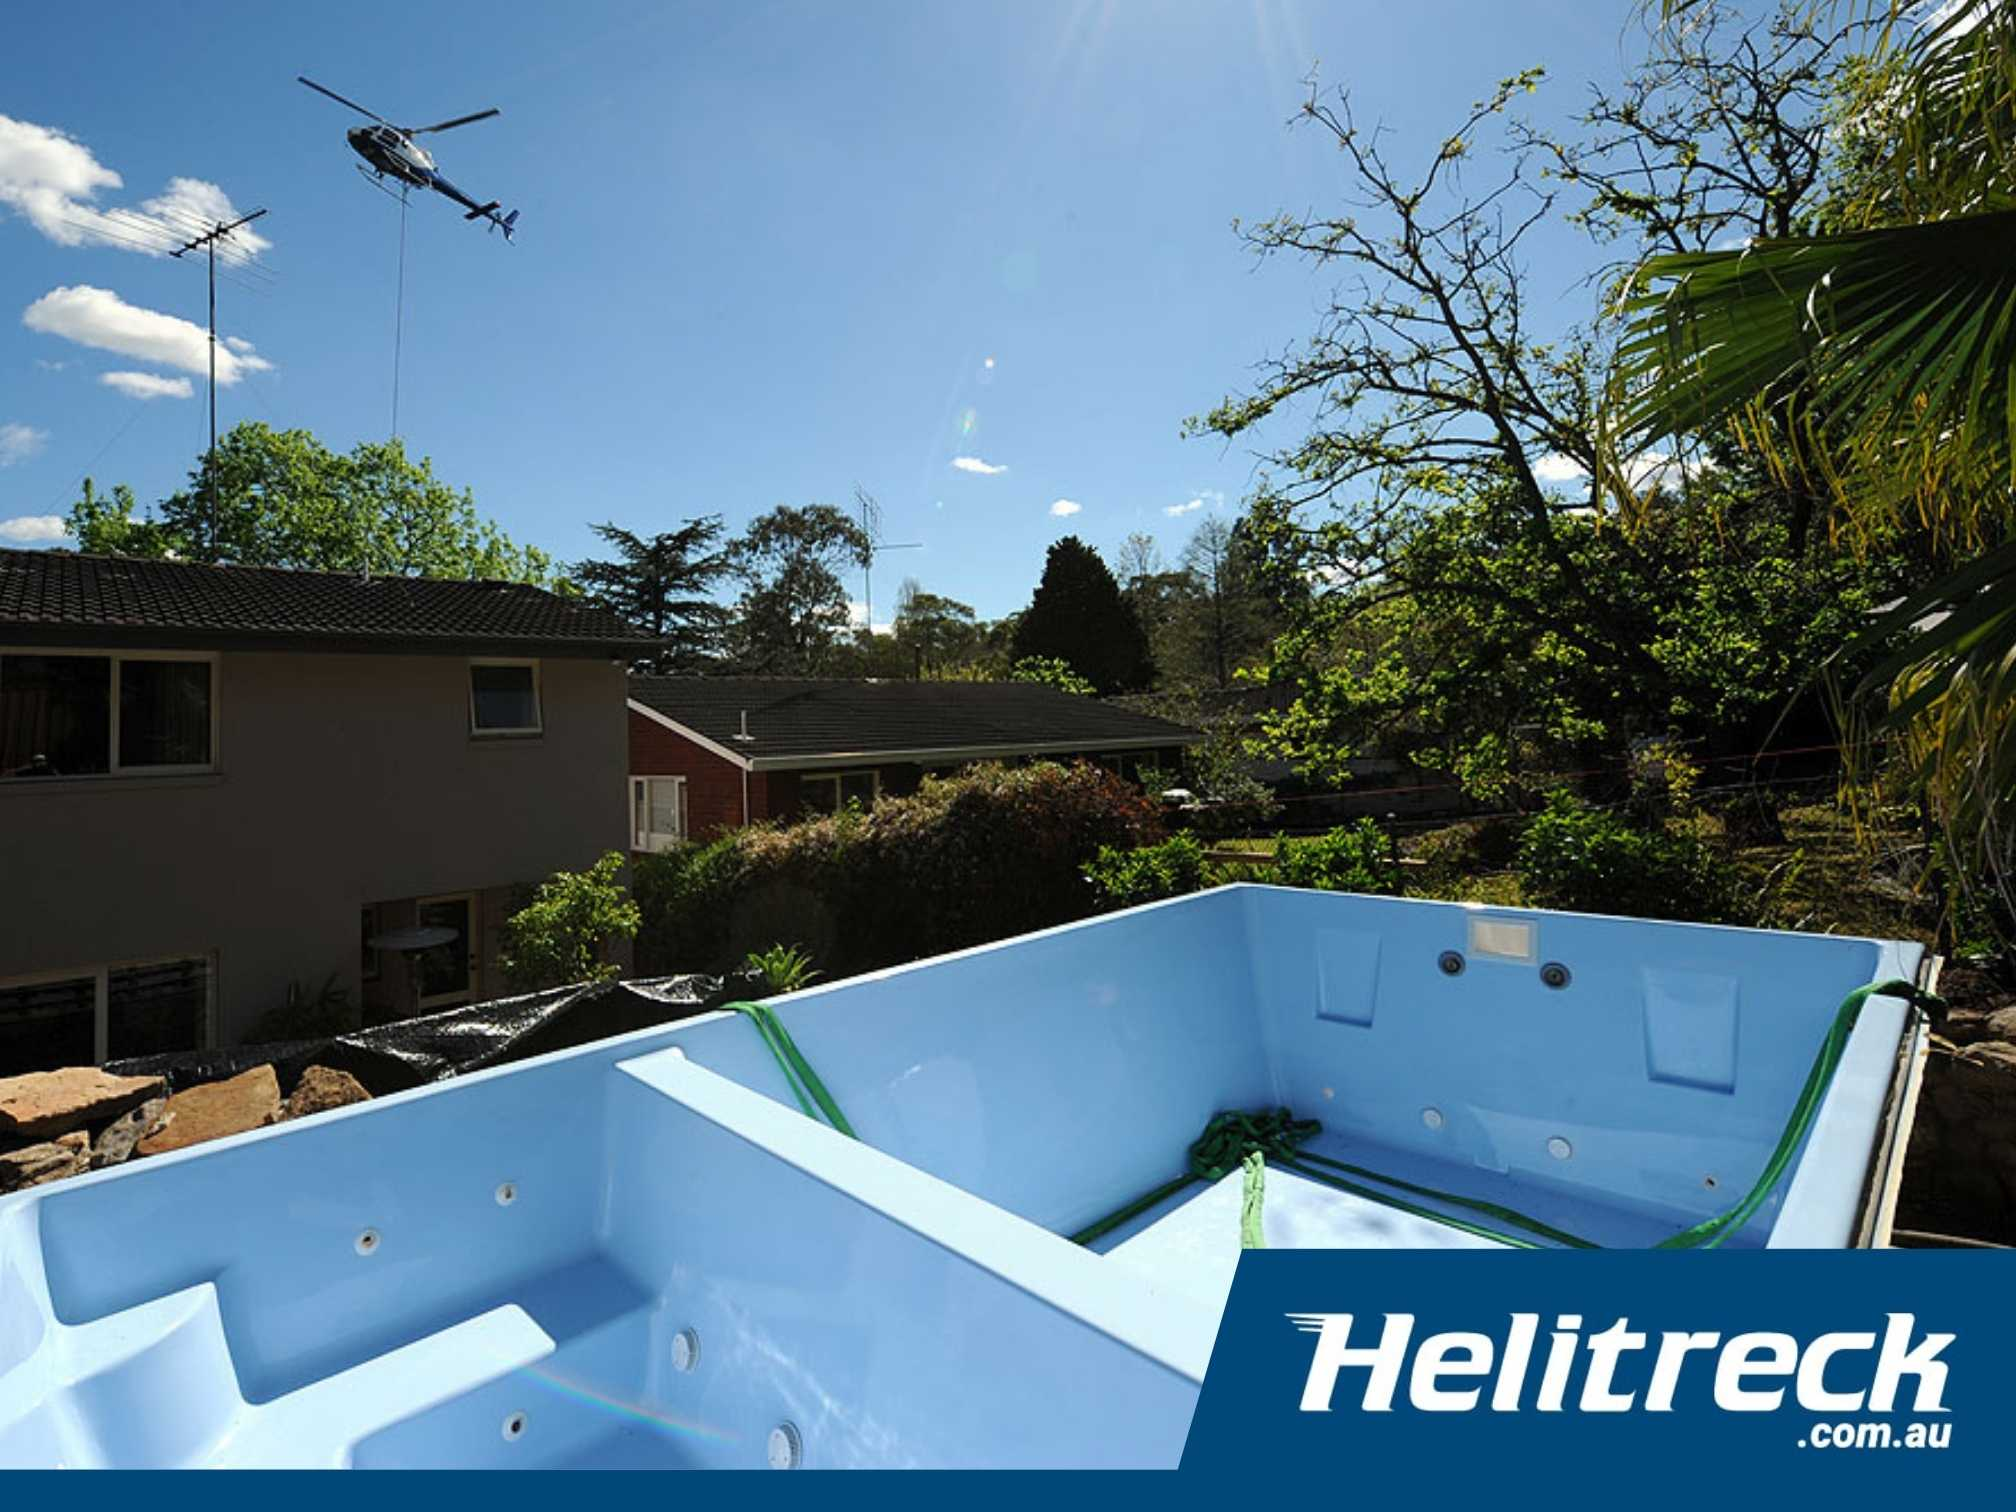 Helicopter crane installing a spa pool